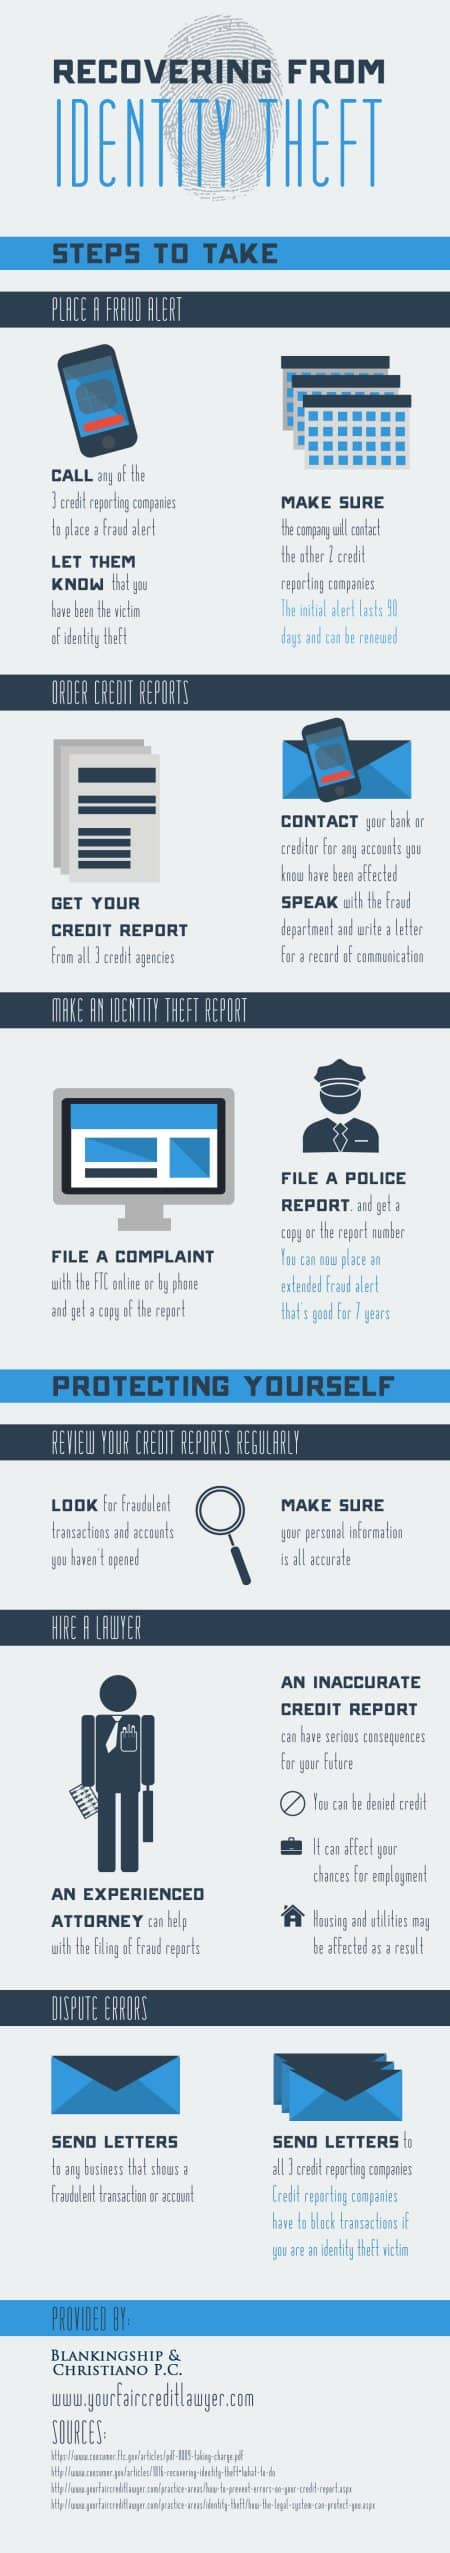 Identity theft lawyer in Leesburg [INFOGRAPHIC]